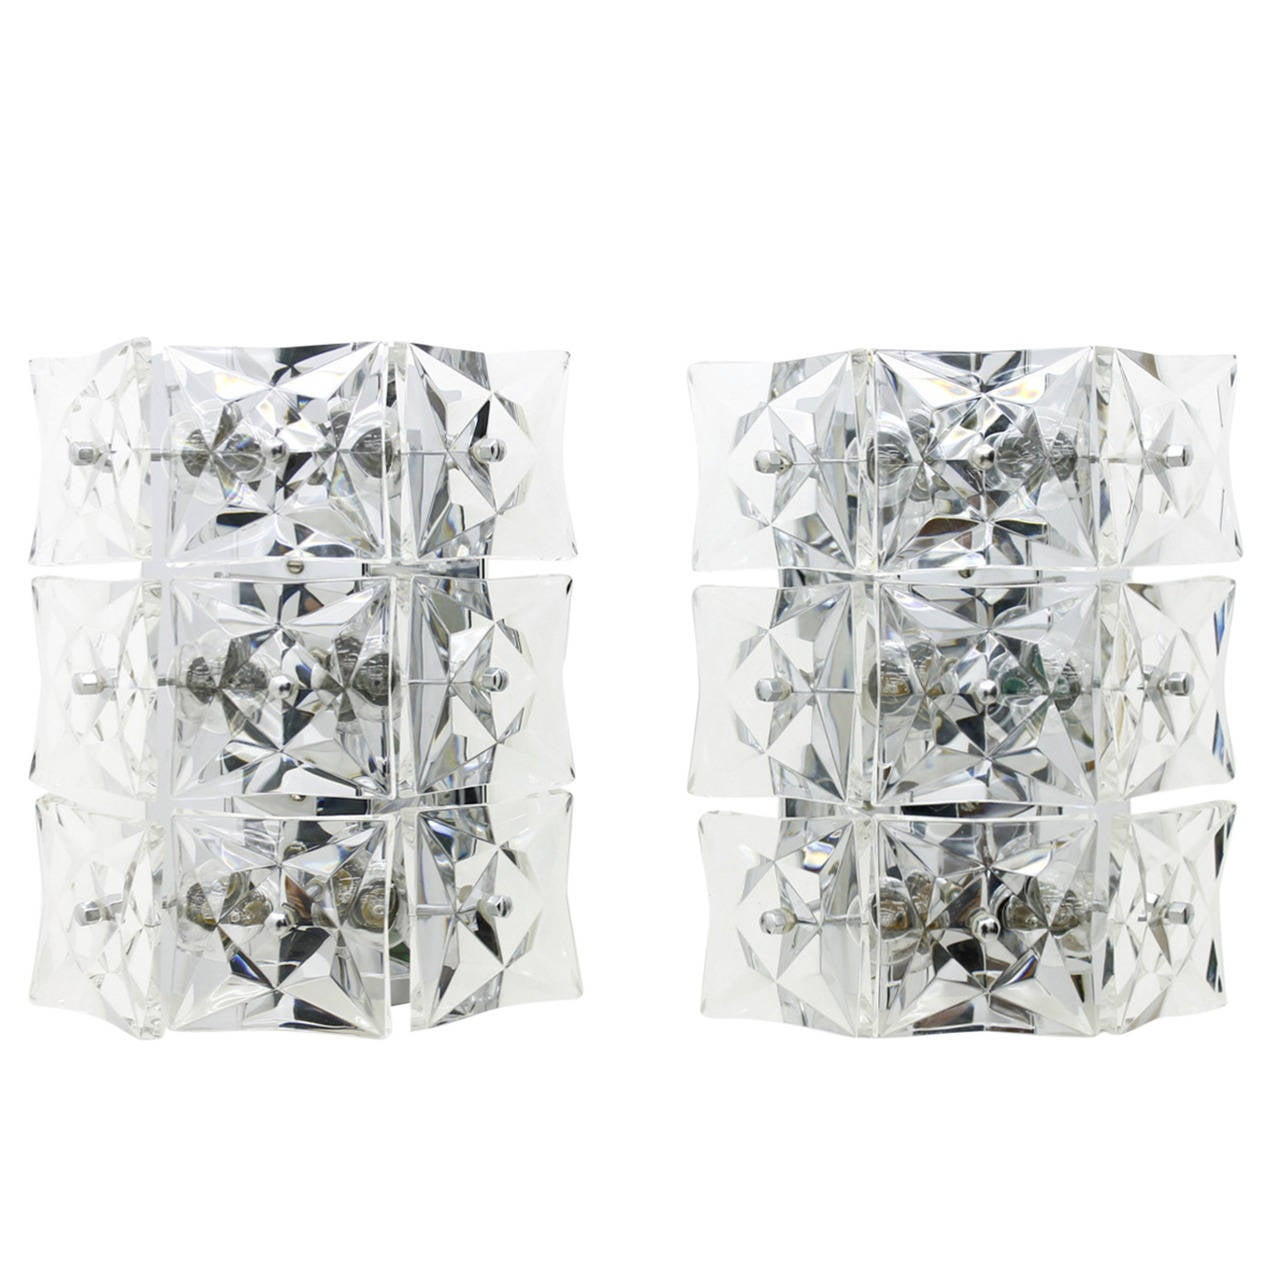 Pair of Large Crystal Glass Wall Sconces by Kinkeldey, circa 1960s